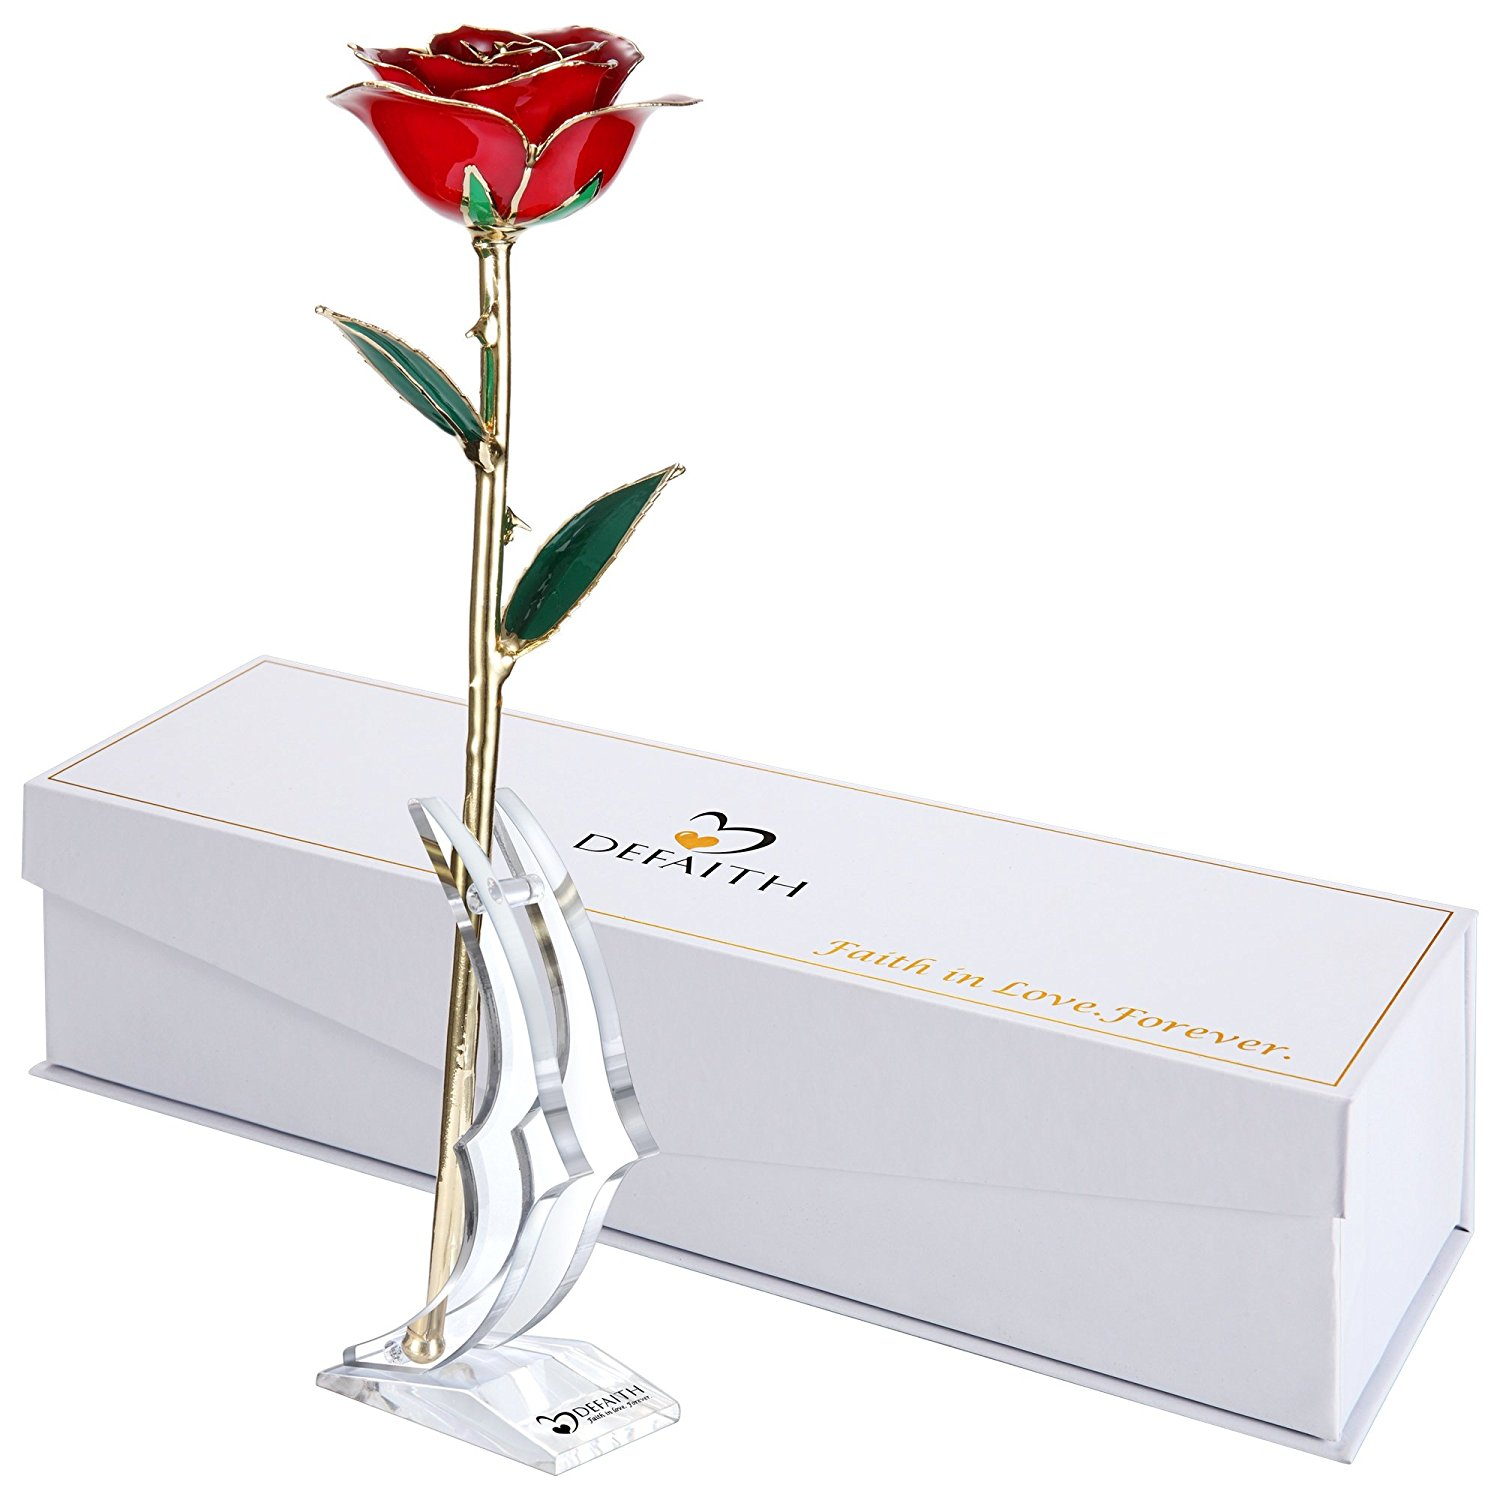 6 DeFaith Red Gold Rose, 24K Gold Trimmed Long Stem Real Rose with Moon-shape Rose Stand. Last a Lifetime